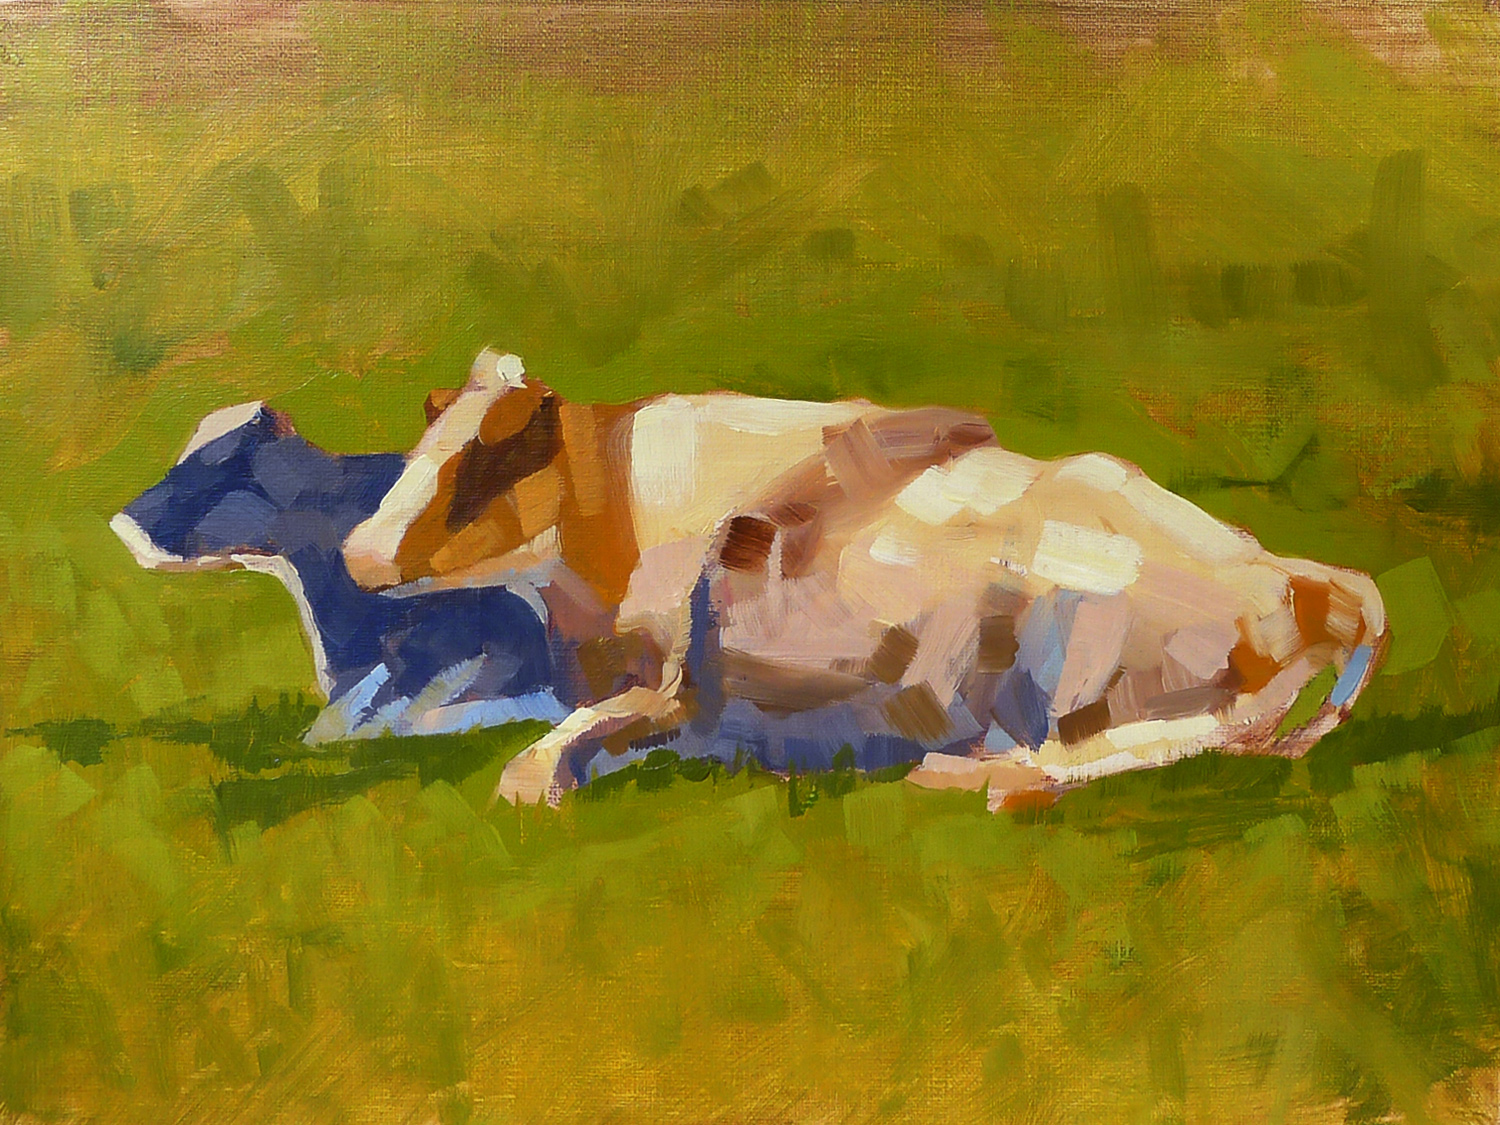 Cows in a Field - Impressionist Painting by Adam Houston